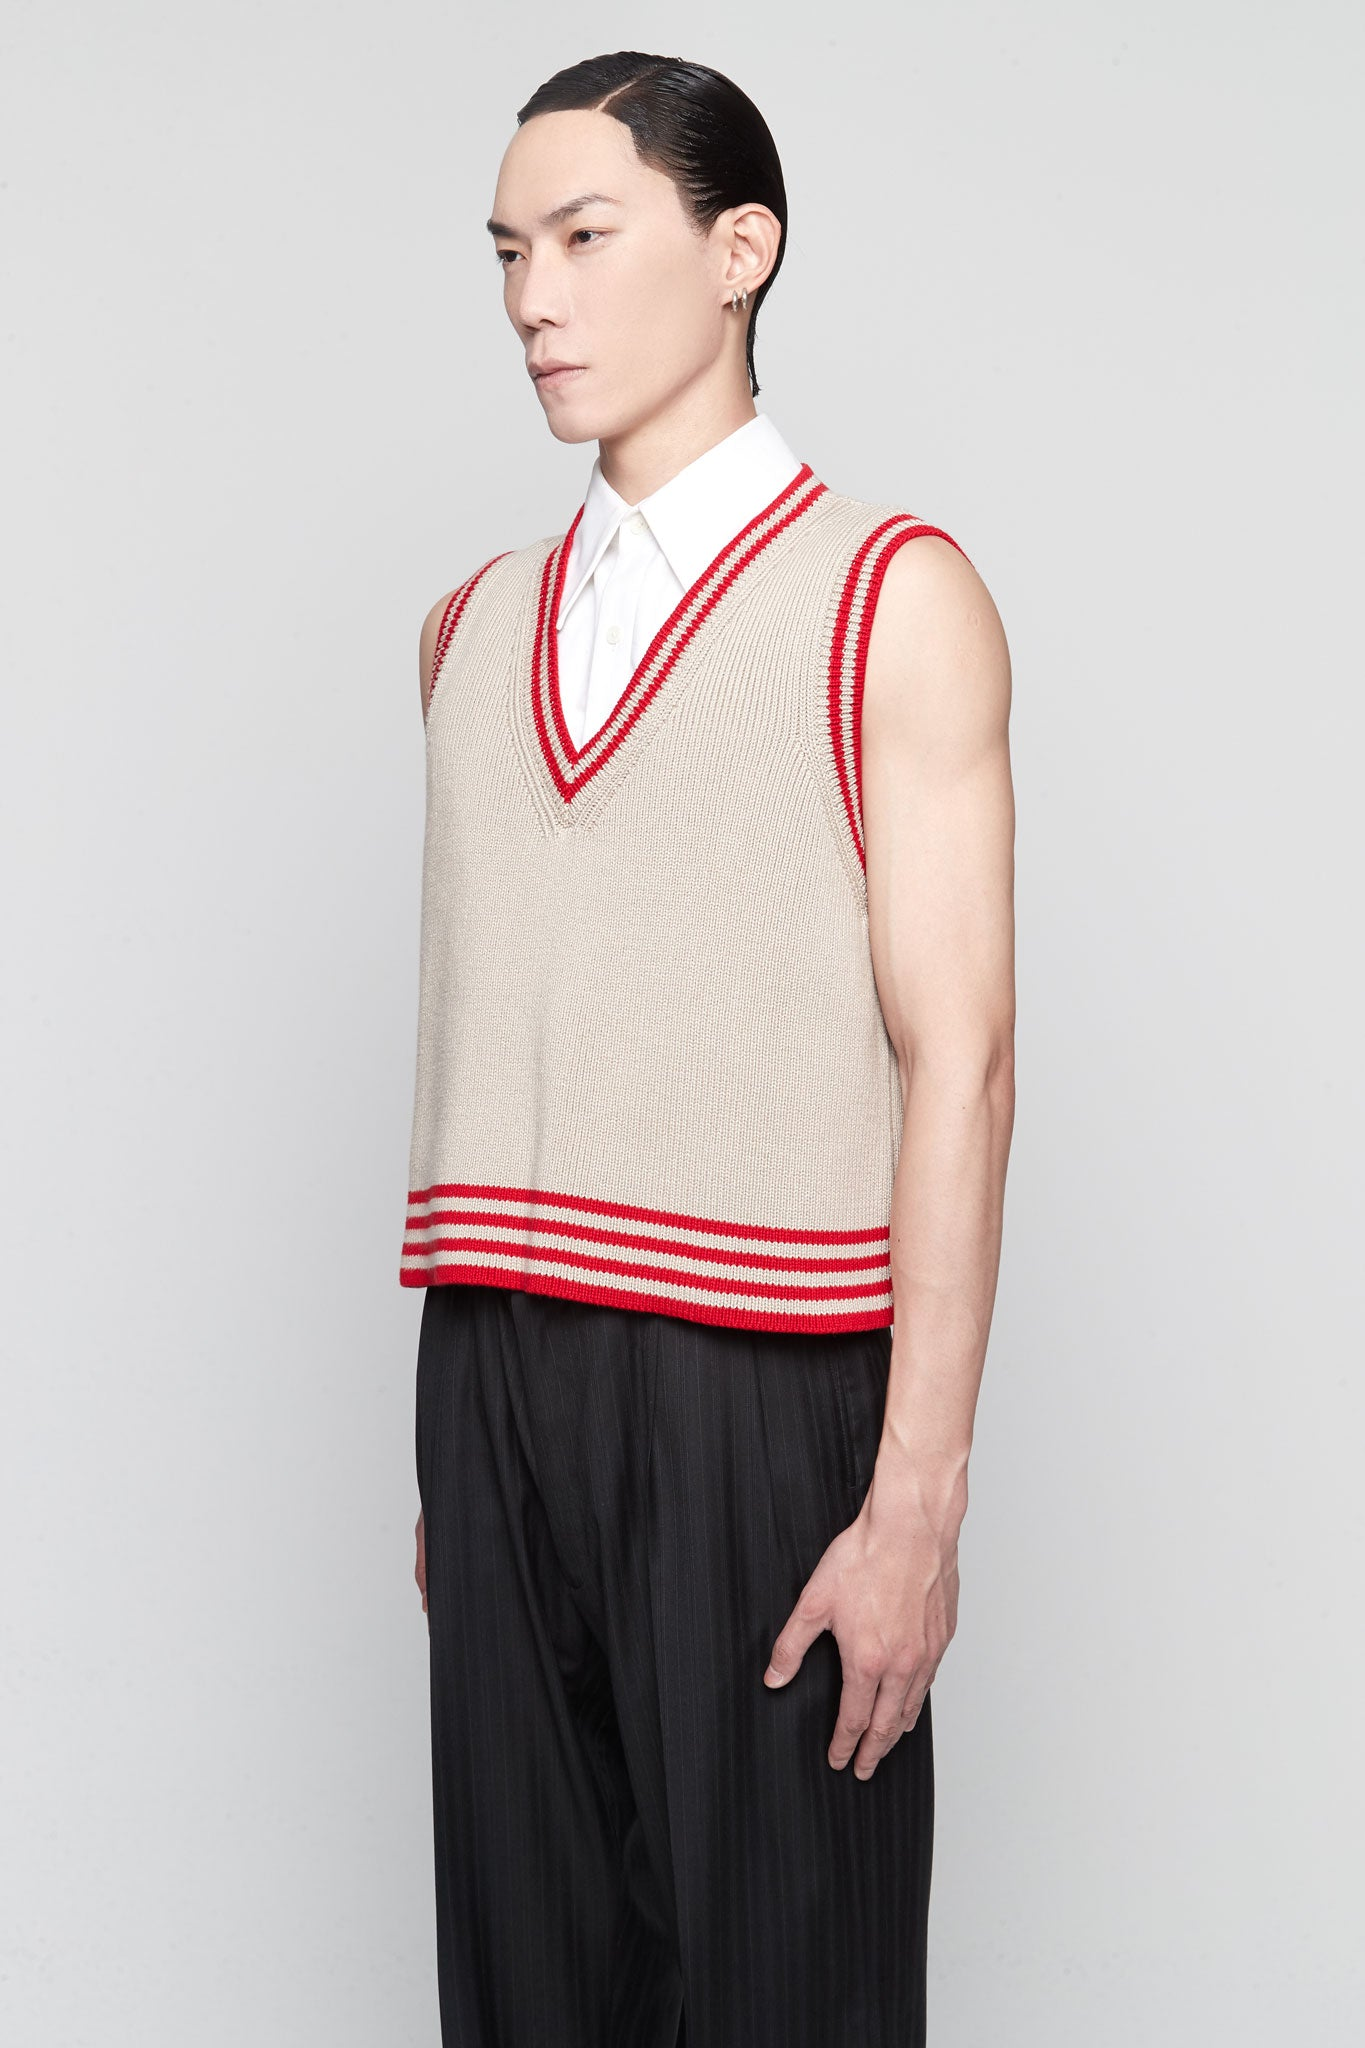 Sleeveless Knit Vest Beige + Stripes Red